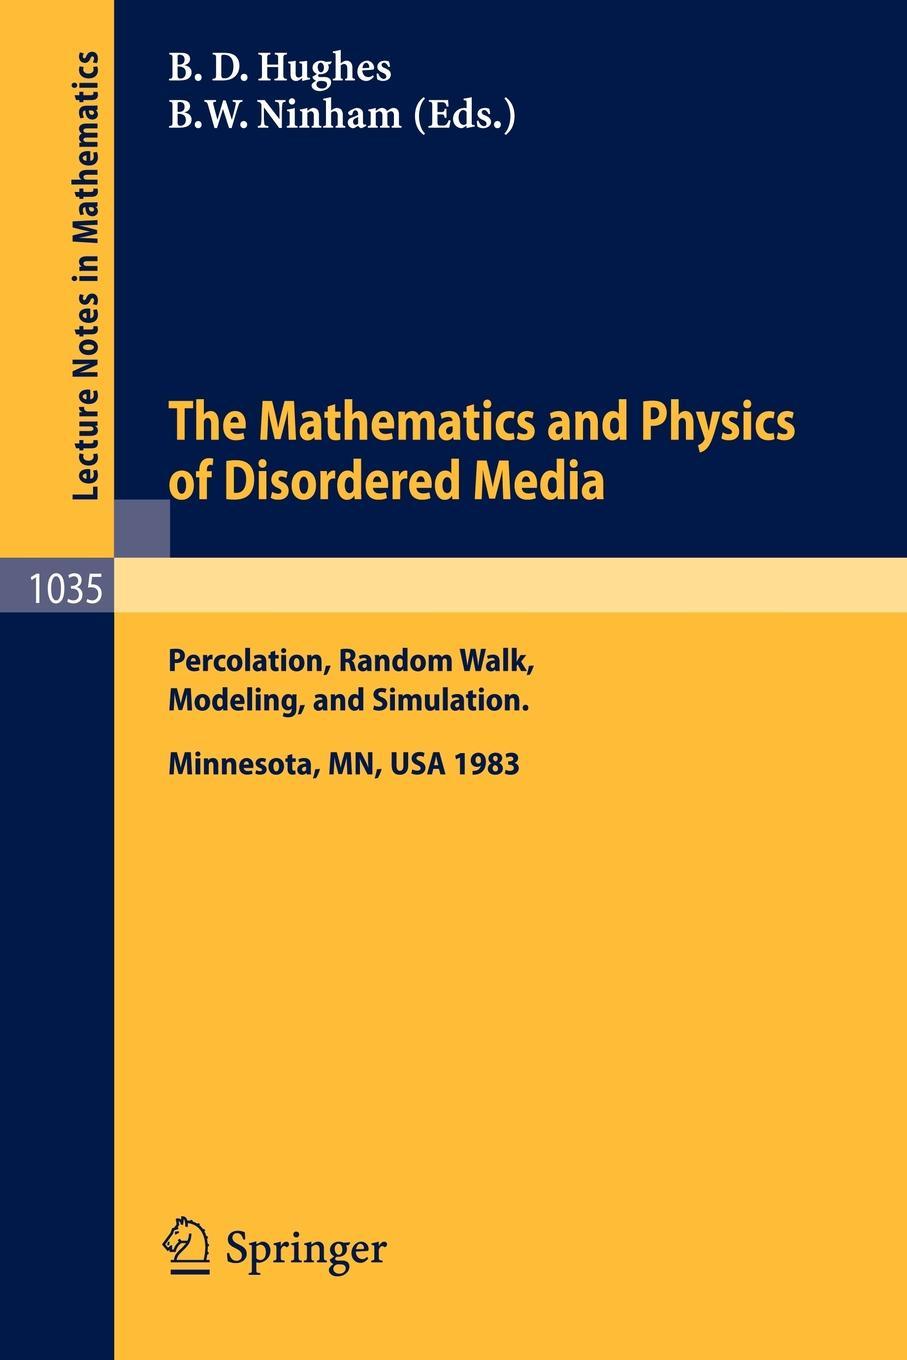 The Mathematics and Physics of Disordered Media. Percolation, Random Walk, Modeling,and Simulation. Proceedings of a Workshop held at the IMA, University of Minnesota, Minneapolis, February 13-19, 1983 eulitz jan simulation of the proton therapy gantry at the oncoray dresden